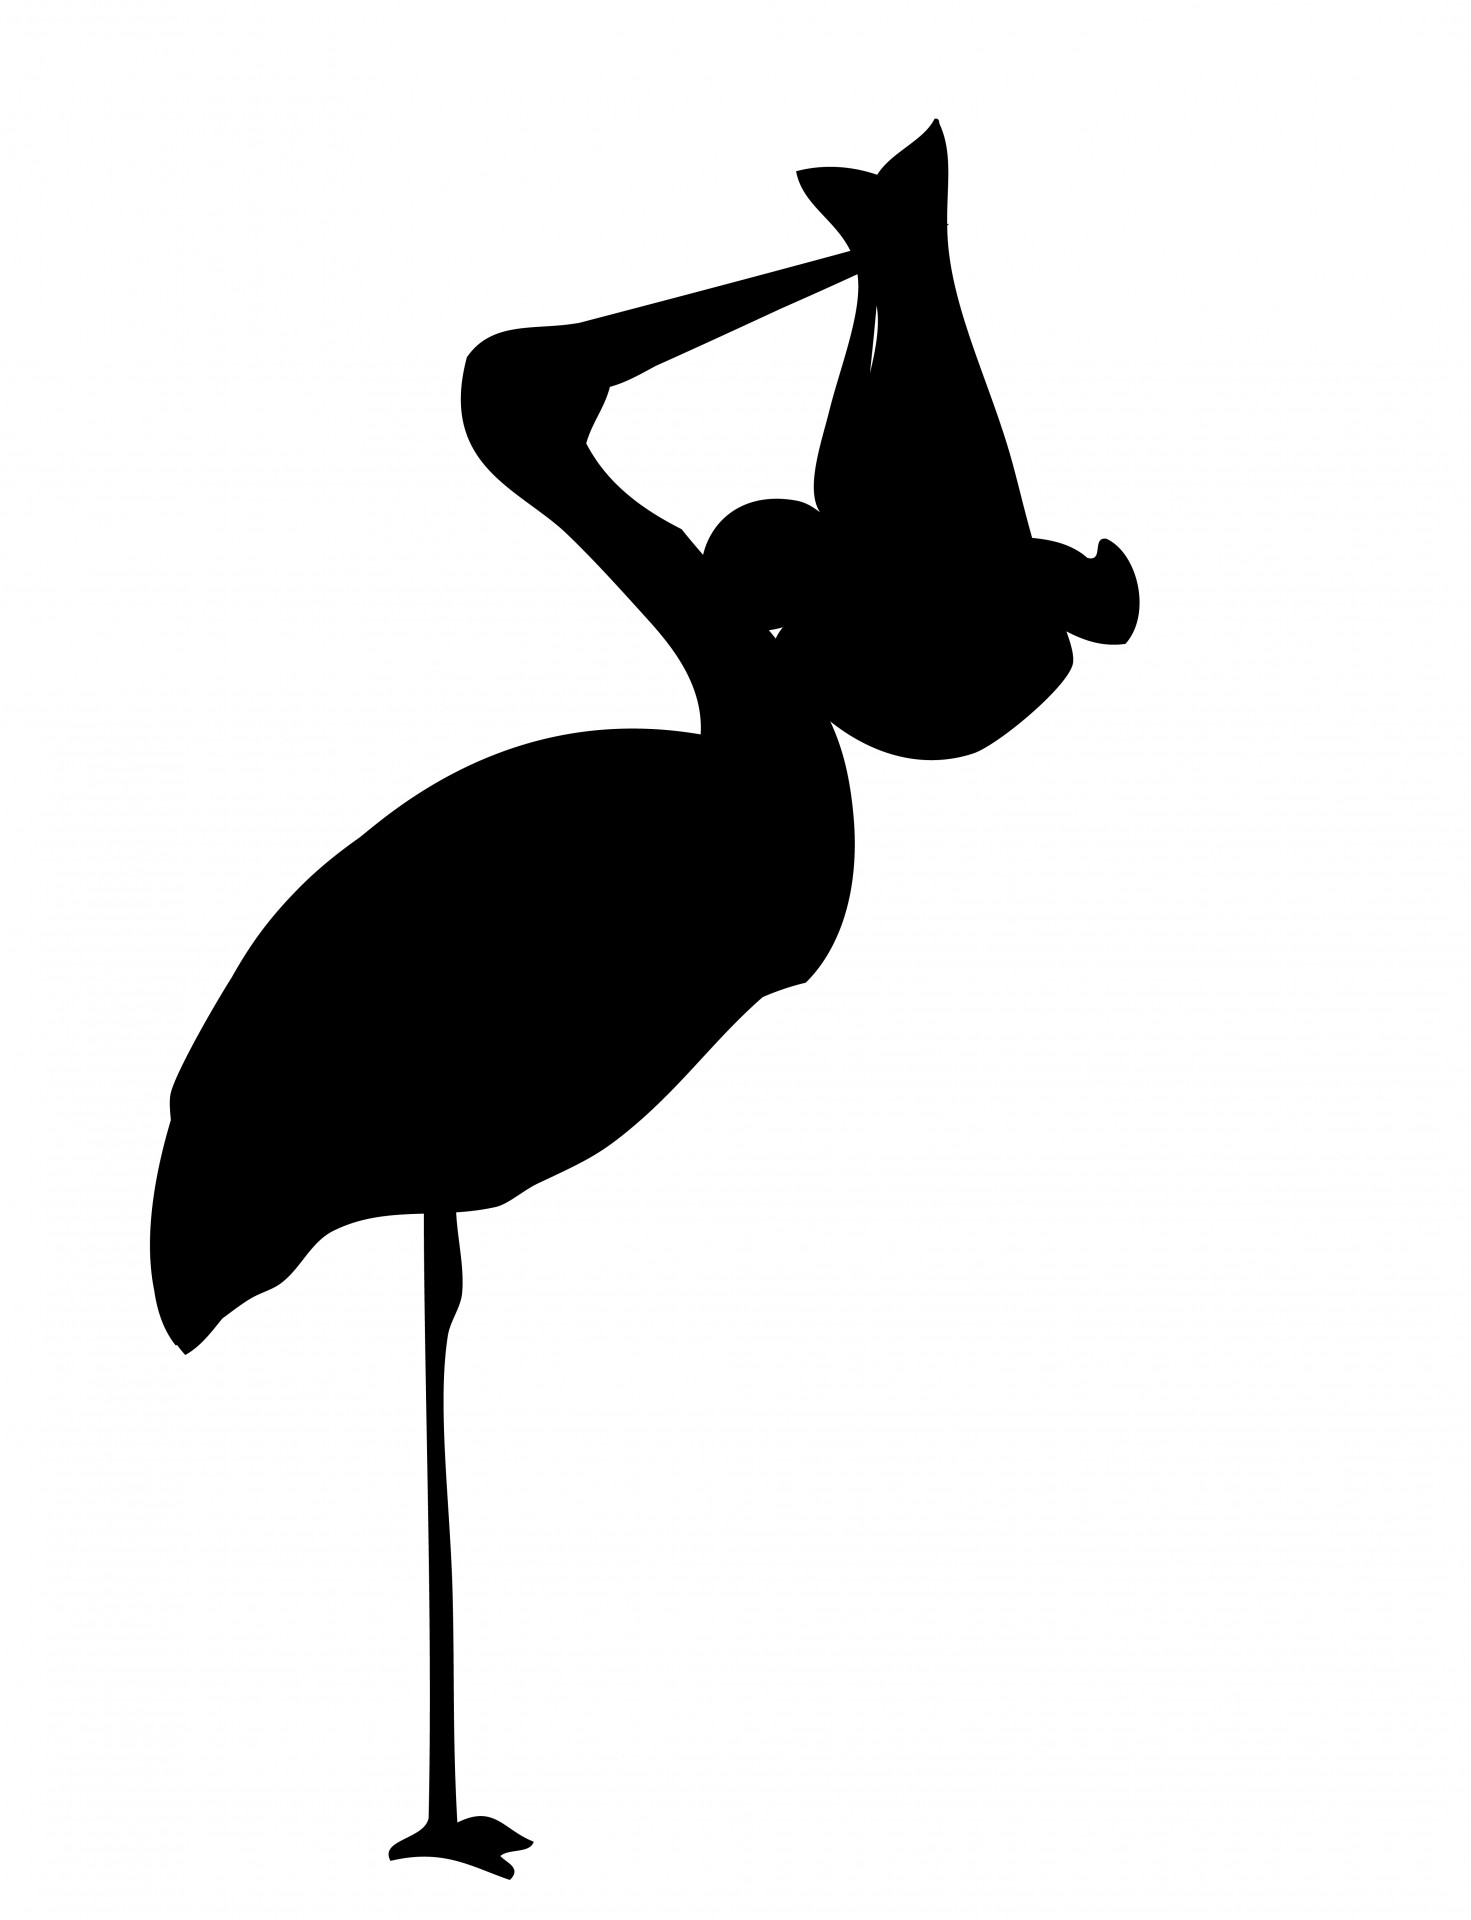 1471x1920 Stork With Baby Silhouette Free Stock Photo